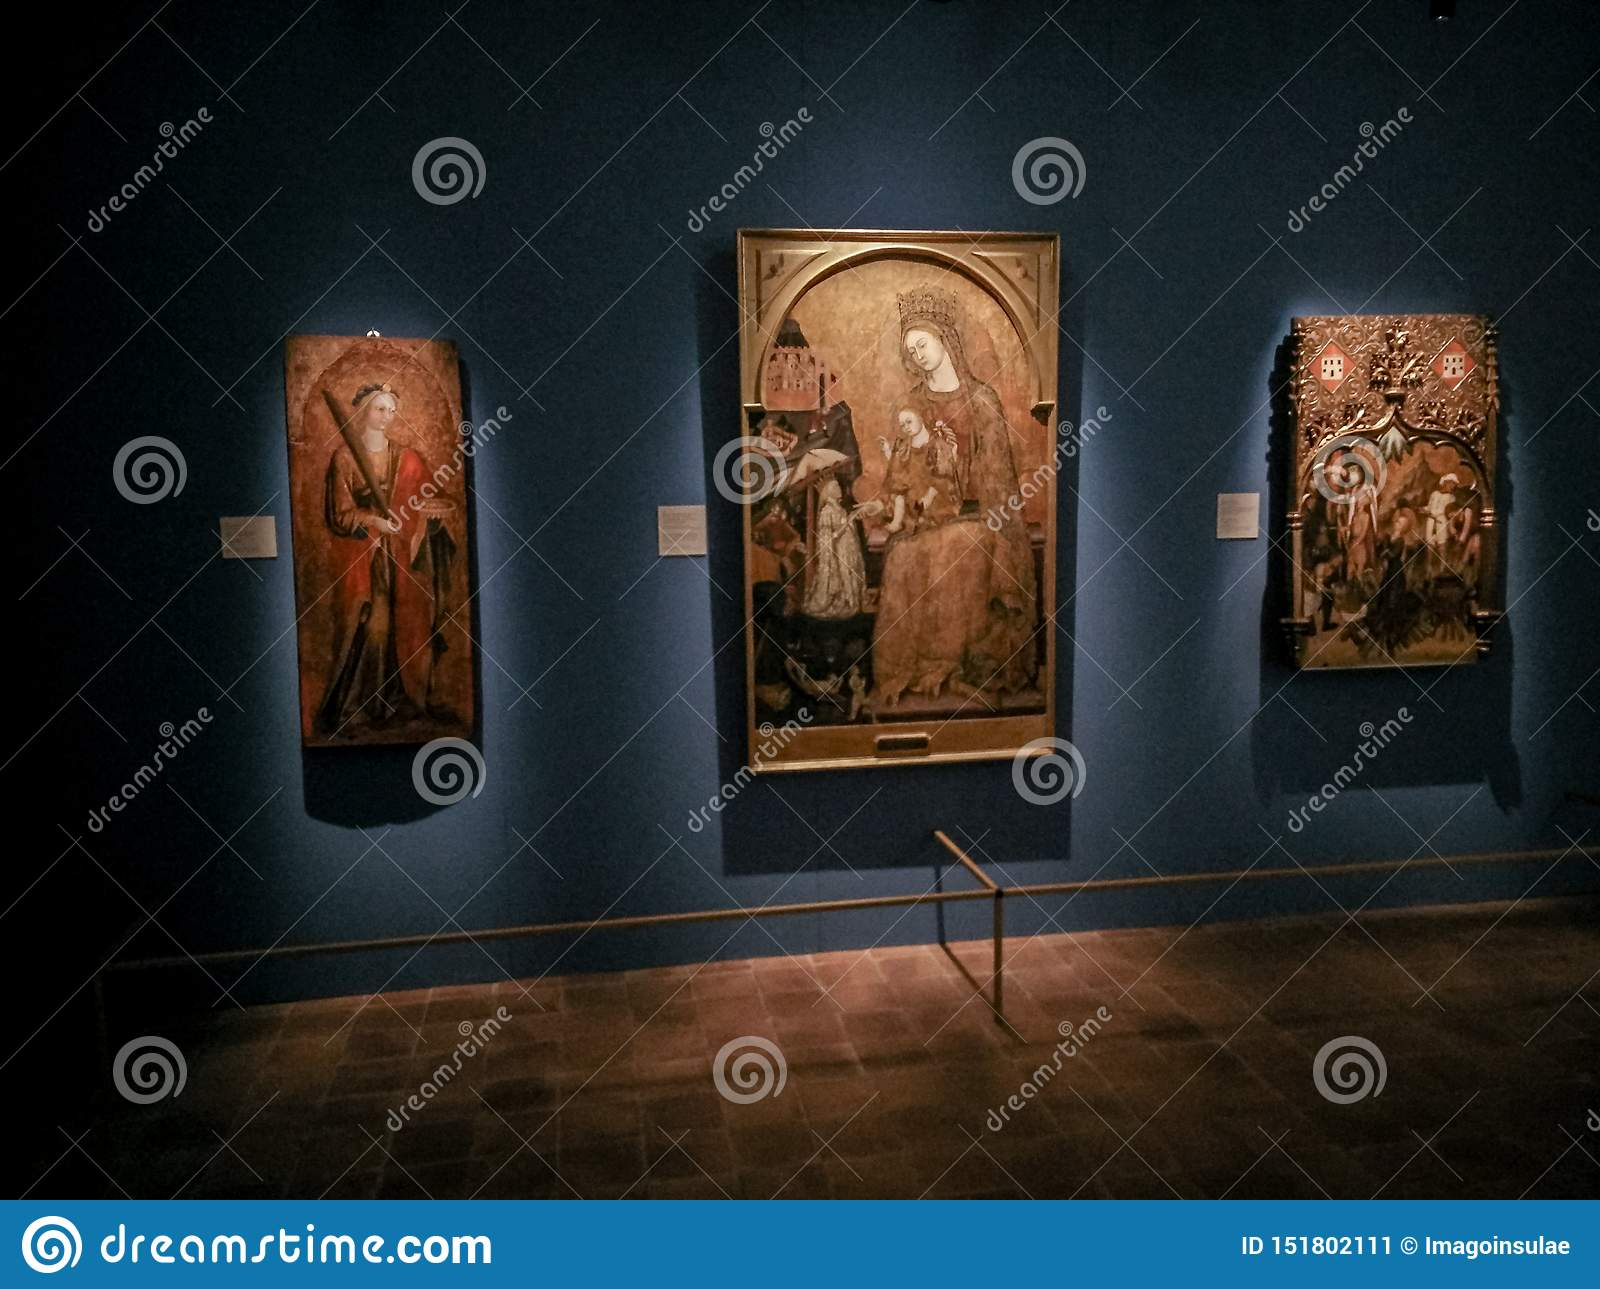 Italy. Matera, UNESCO site and European Capital of Culture 2019. Exhibition The Renaissance as seen from the South